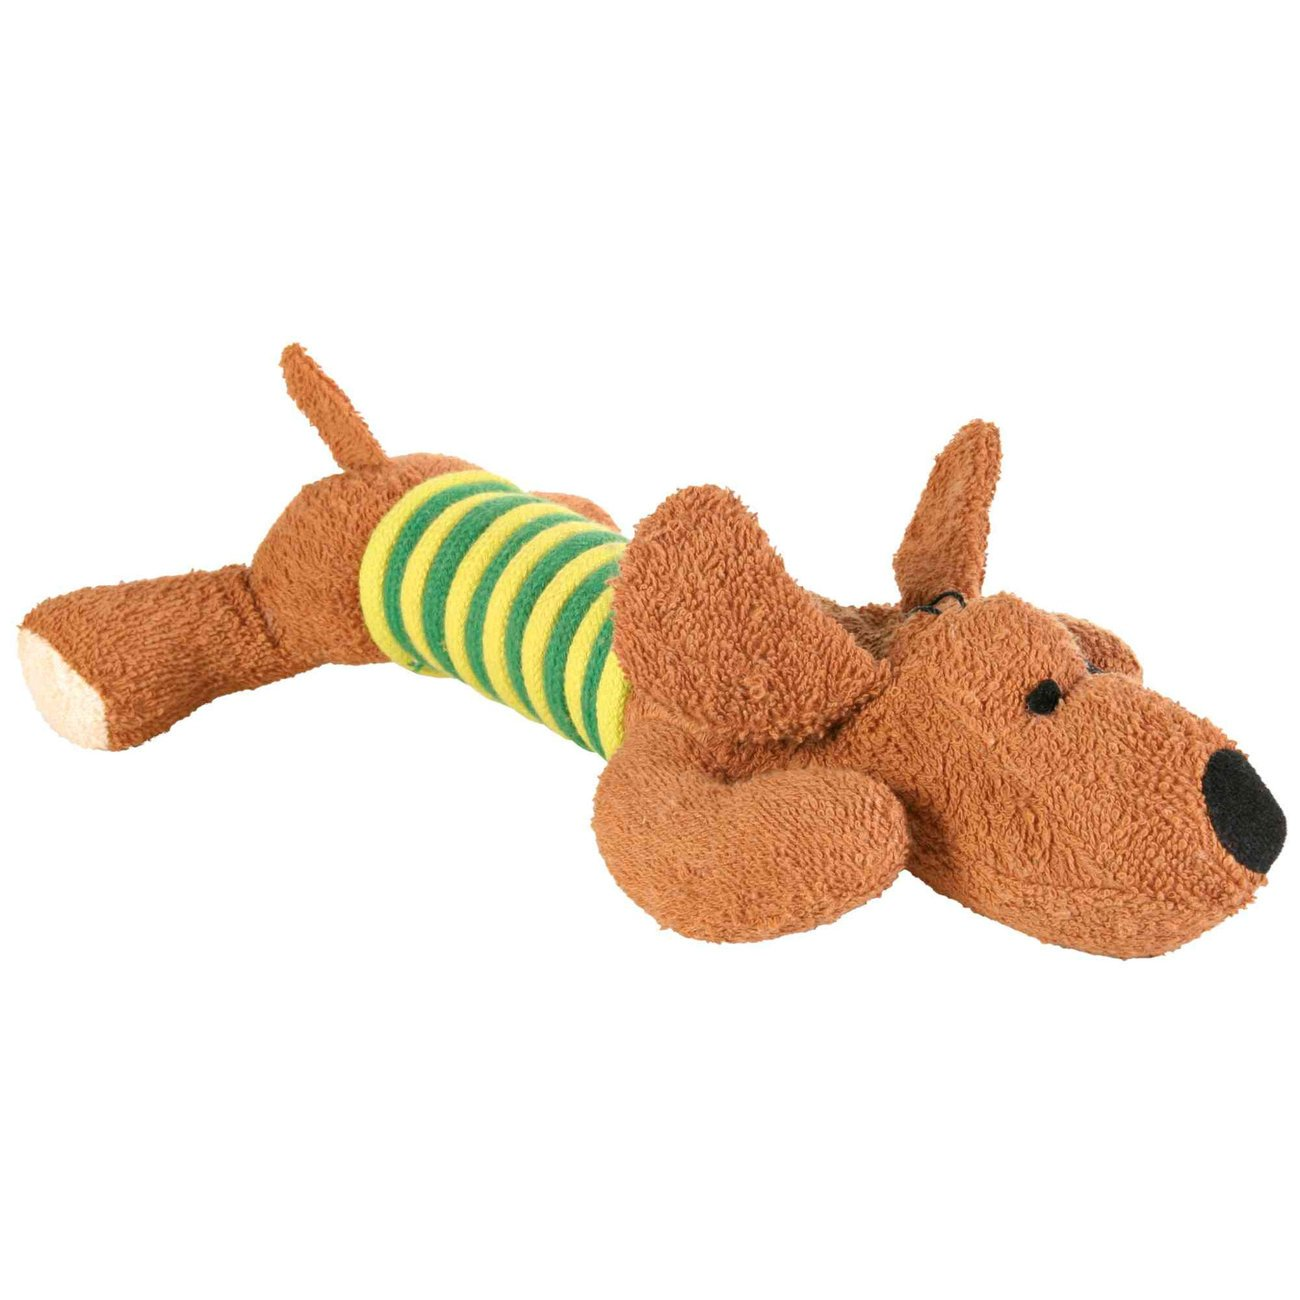 Trixie Hund, Frottee, Frottee, 28 cm